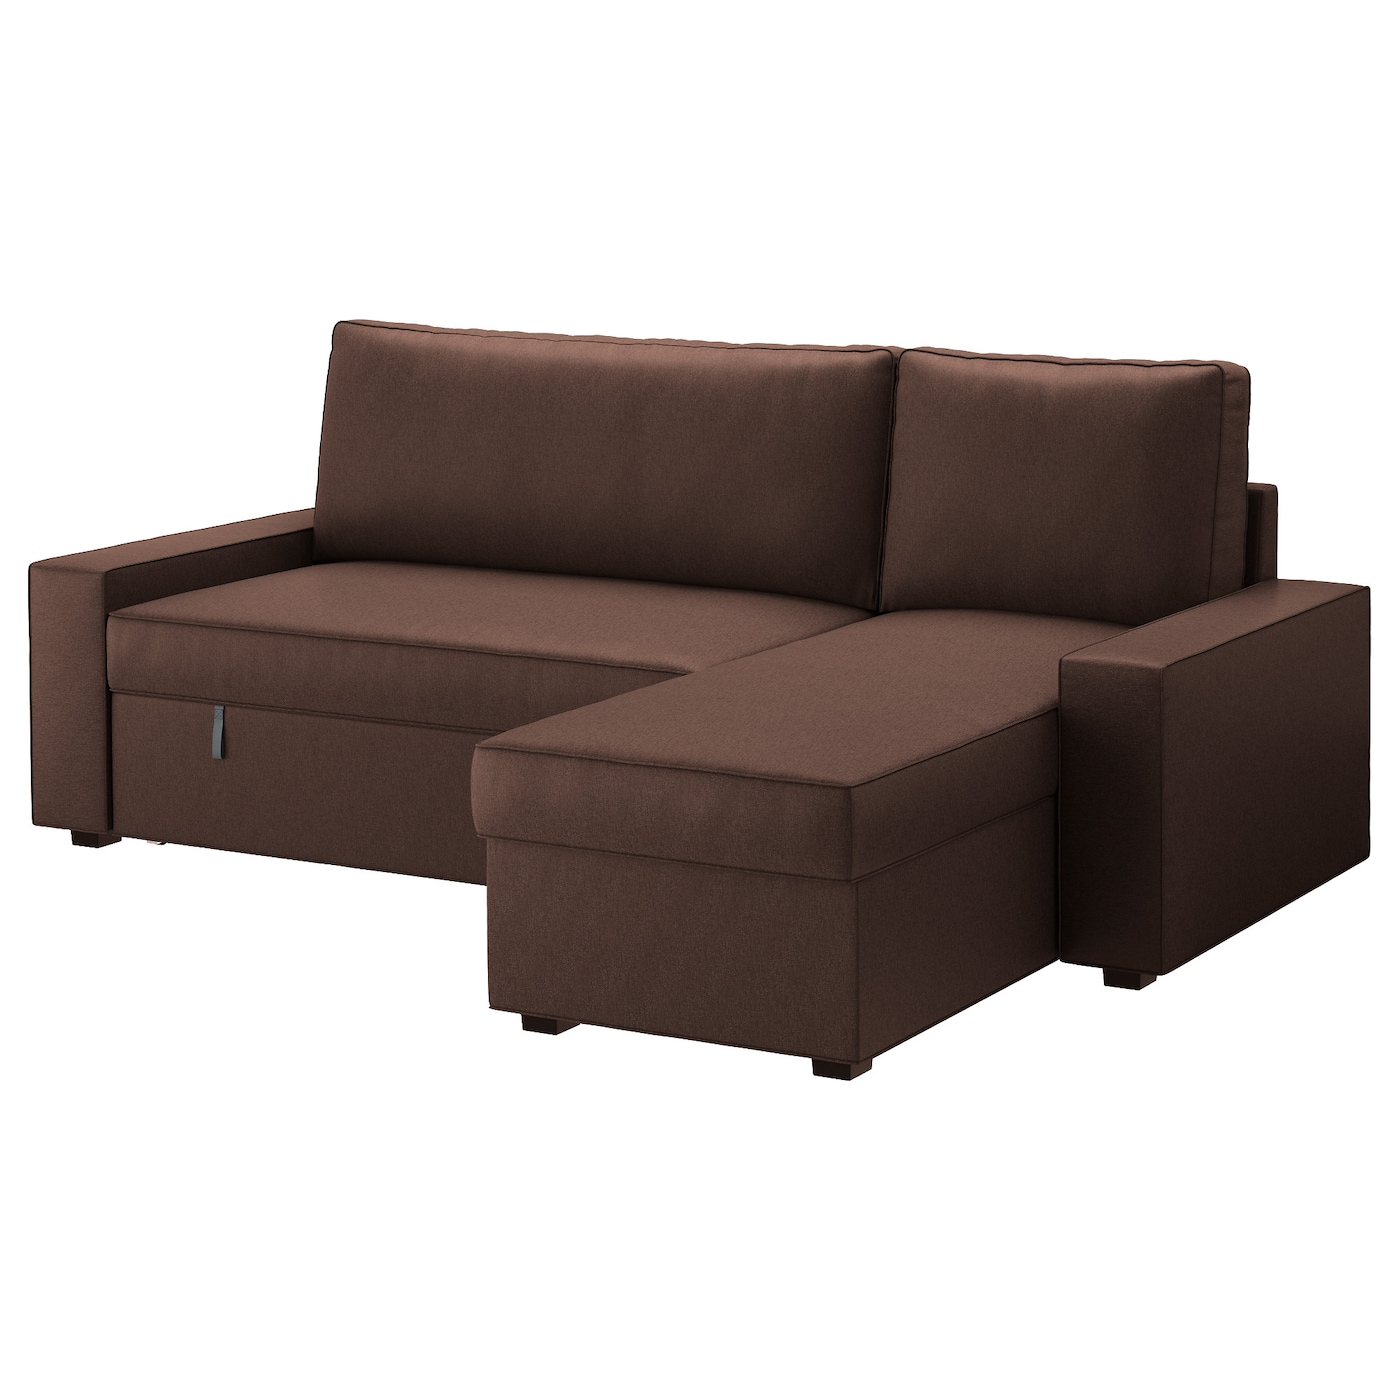 Vilasund sofa bed with chaise longue borred dark brown ikea for Sofa jugendzimmer ikea